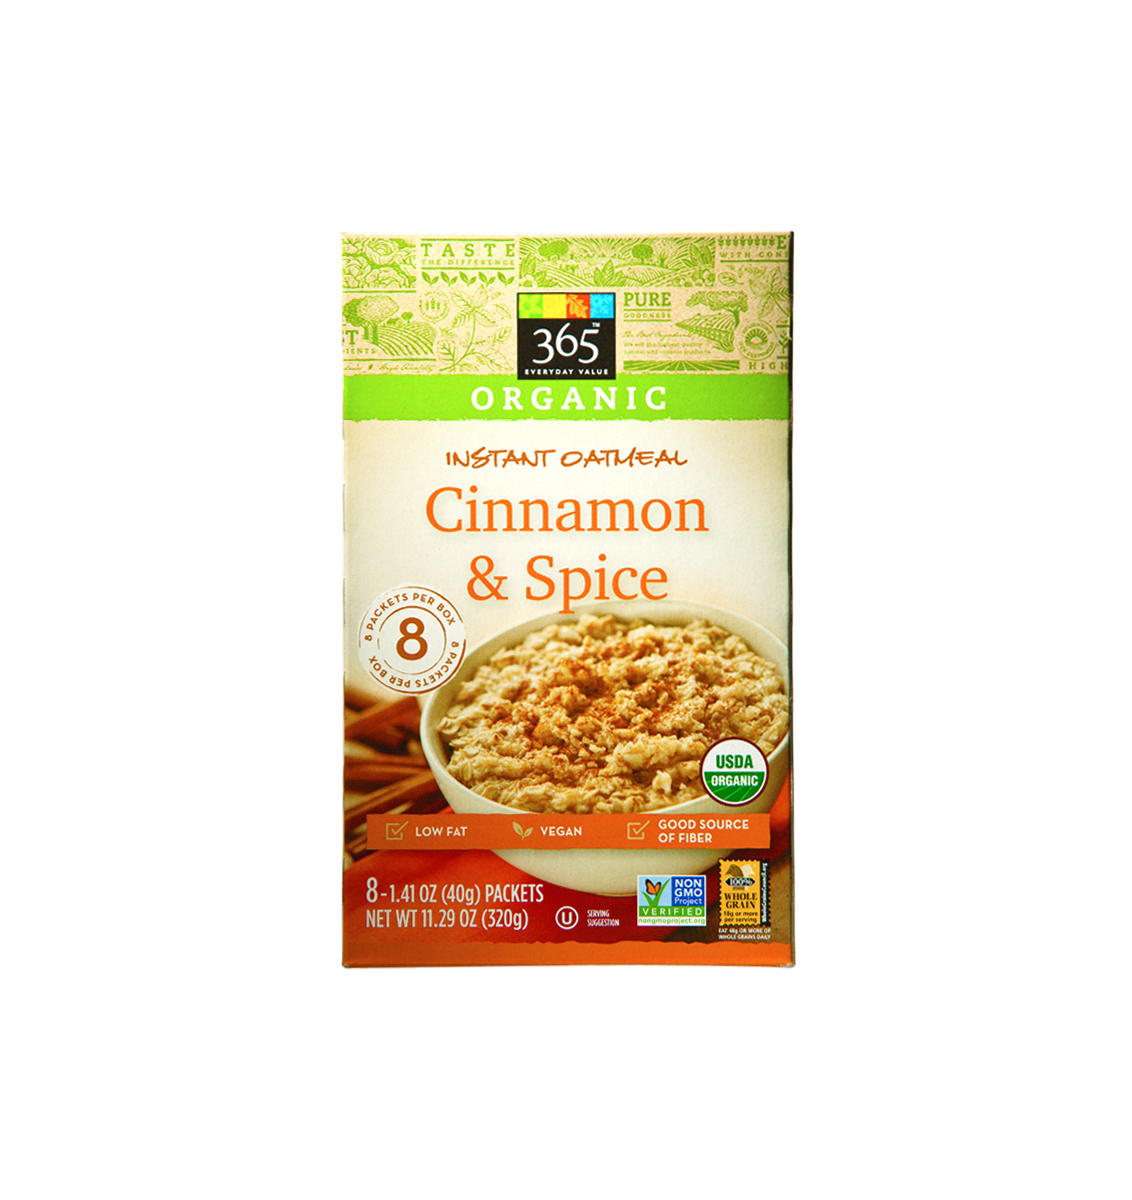 Whole Foods 365 Organic Cinnamon & Spice Instant Oatmeal